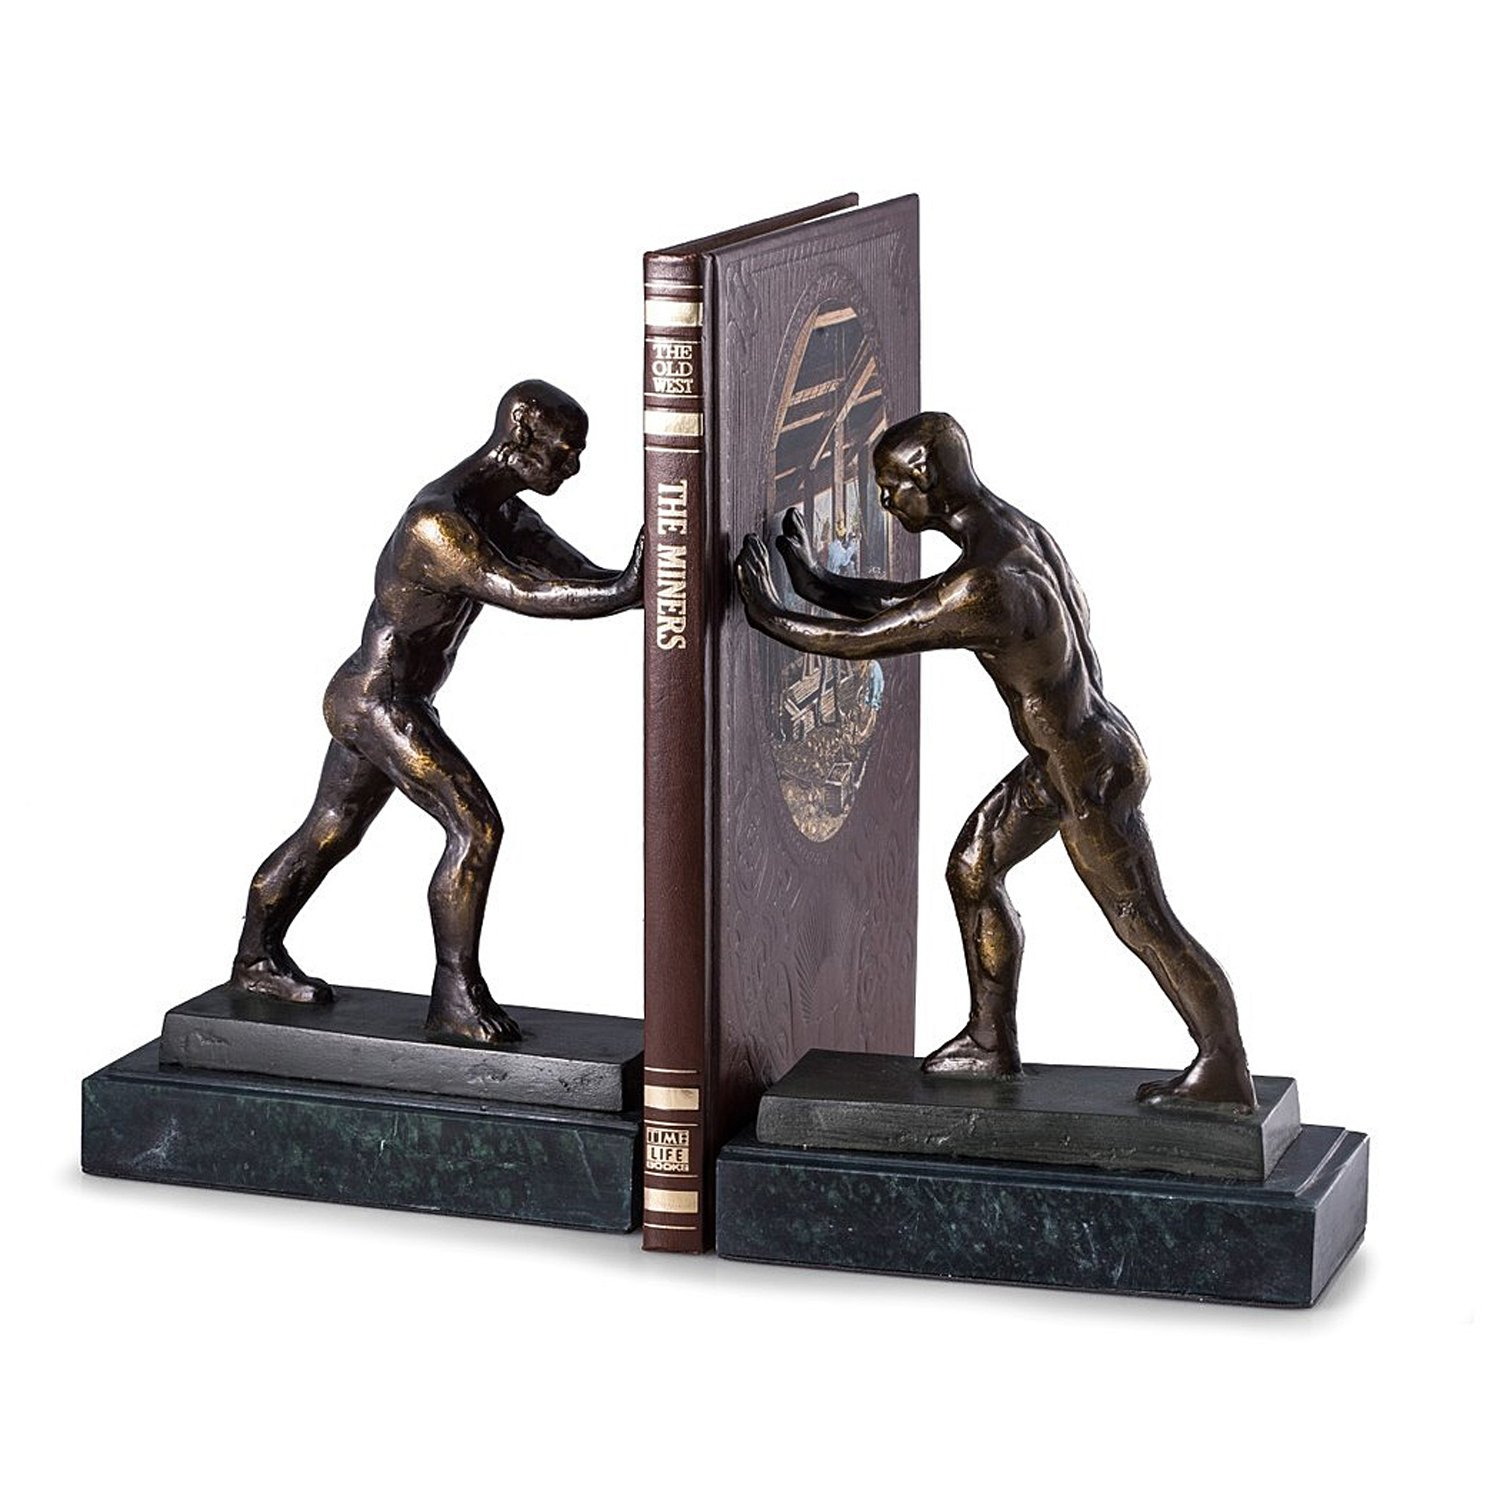 Bookends - Strong Man Bookends - Atlas Bookends on Marble Base - Book Ends by KensingtonRow Home Collection